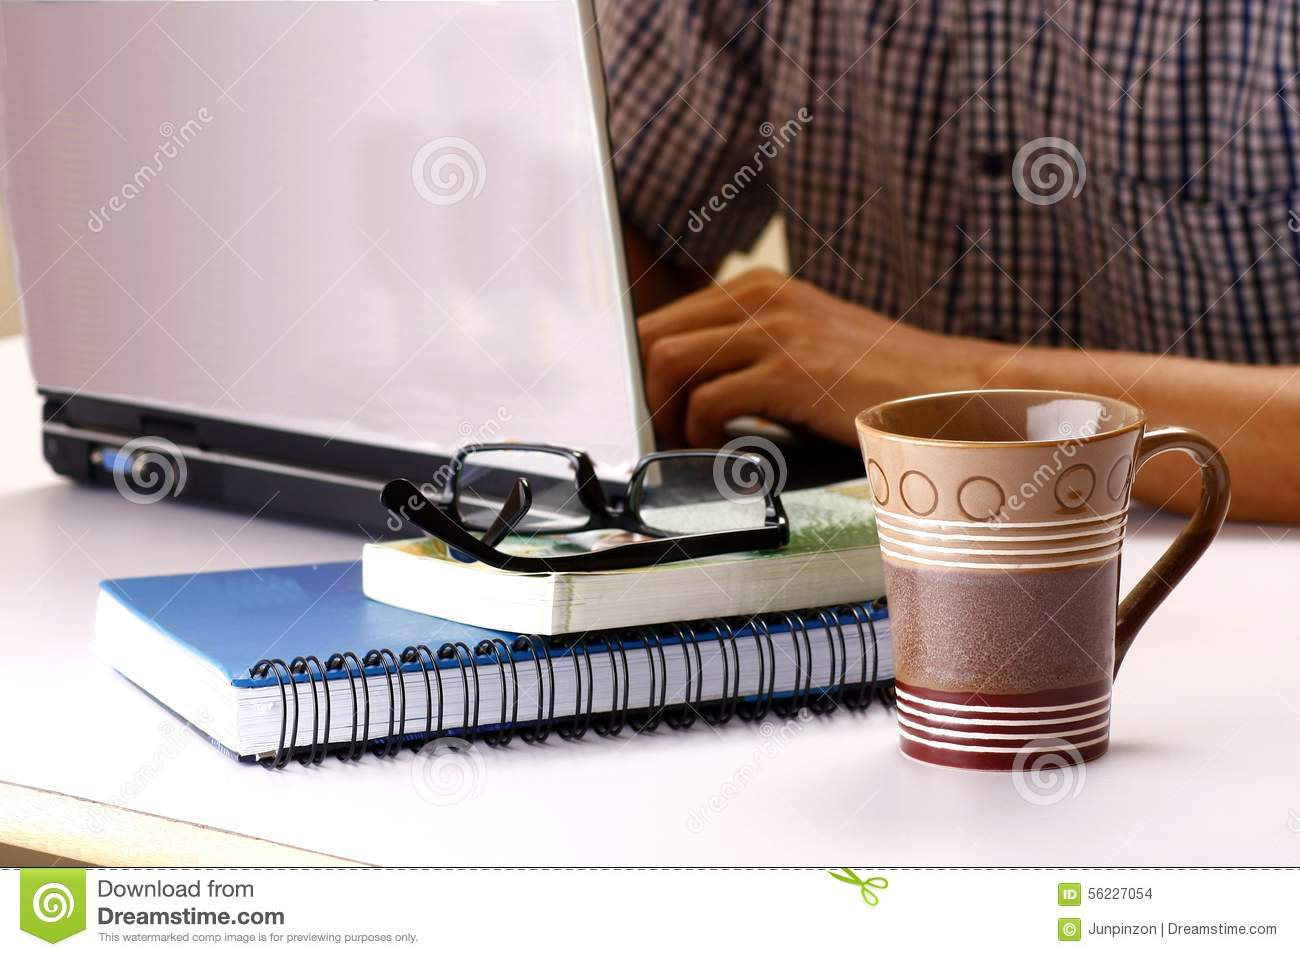 Coffee Mug Stack Of Books And Man Working On A Laptop